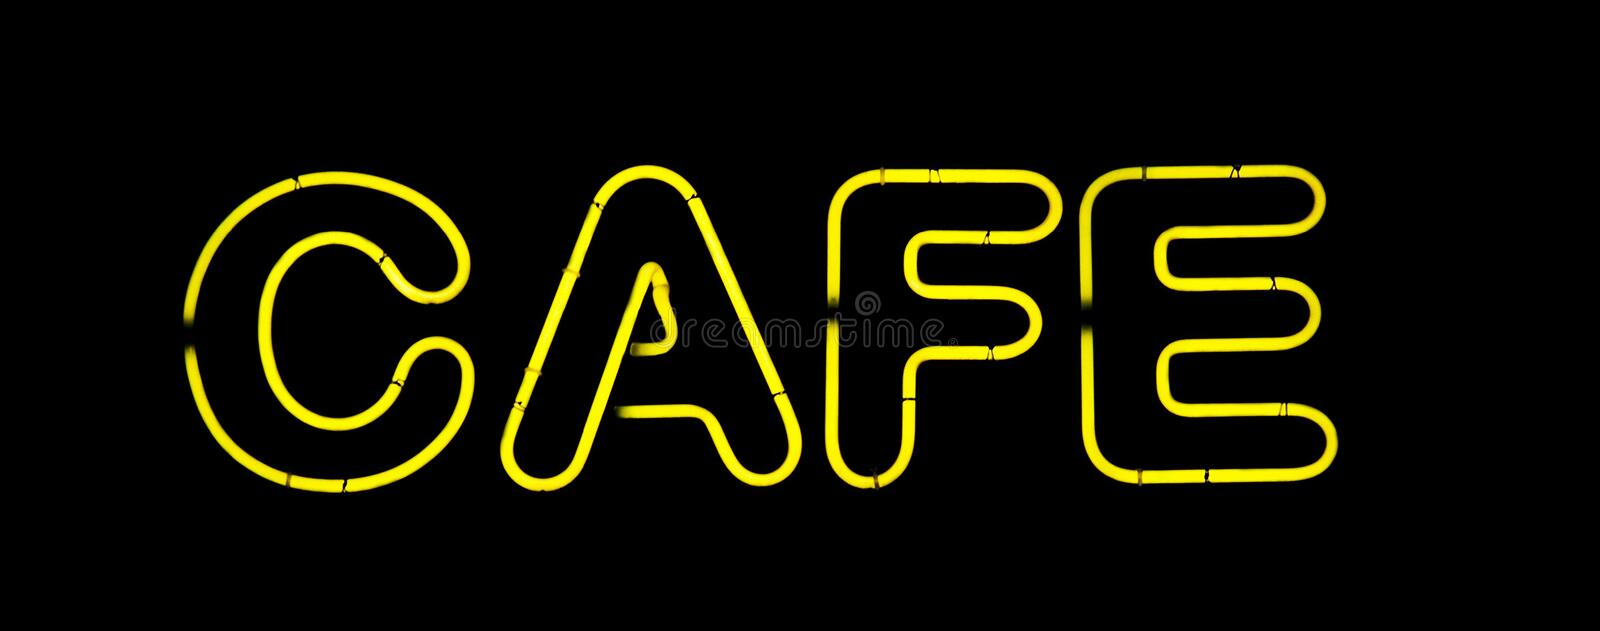 Cafe yellow neon sign royalty free stock photos